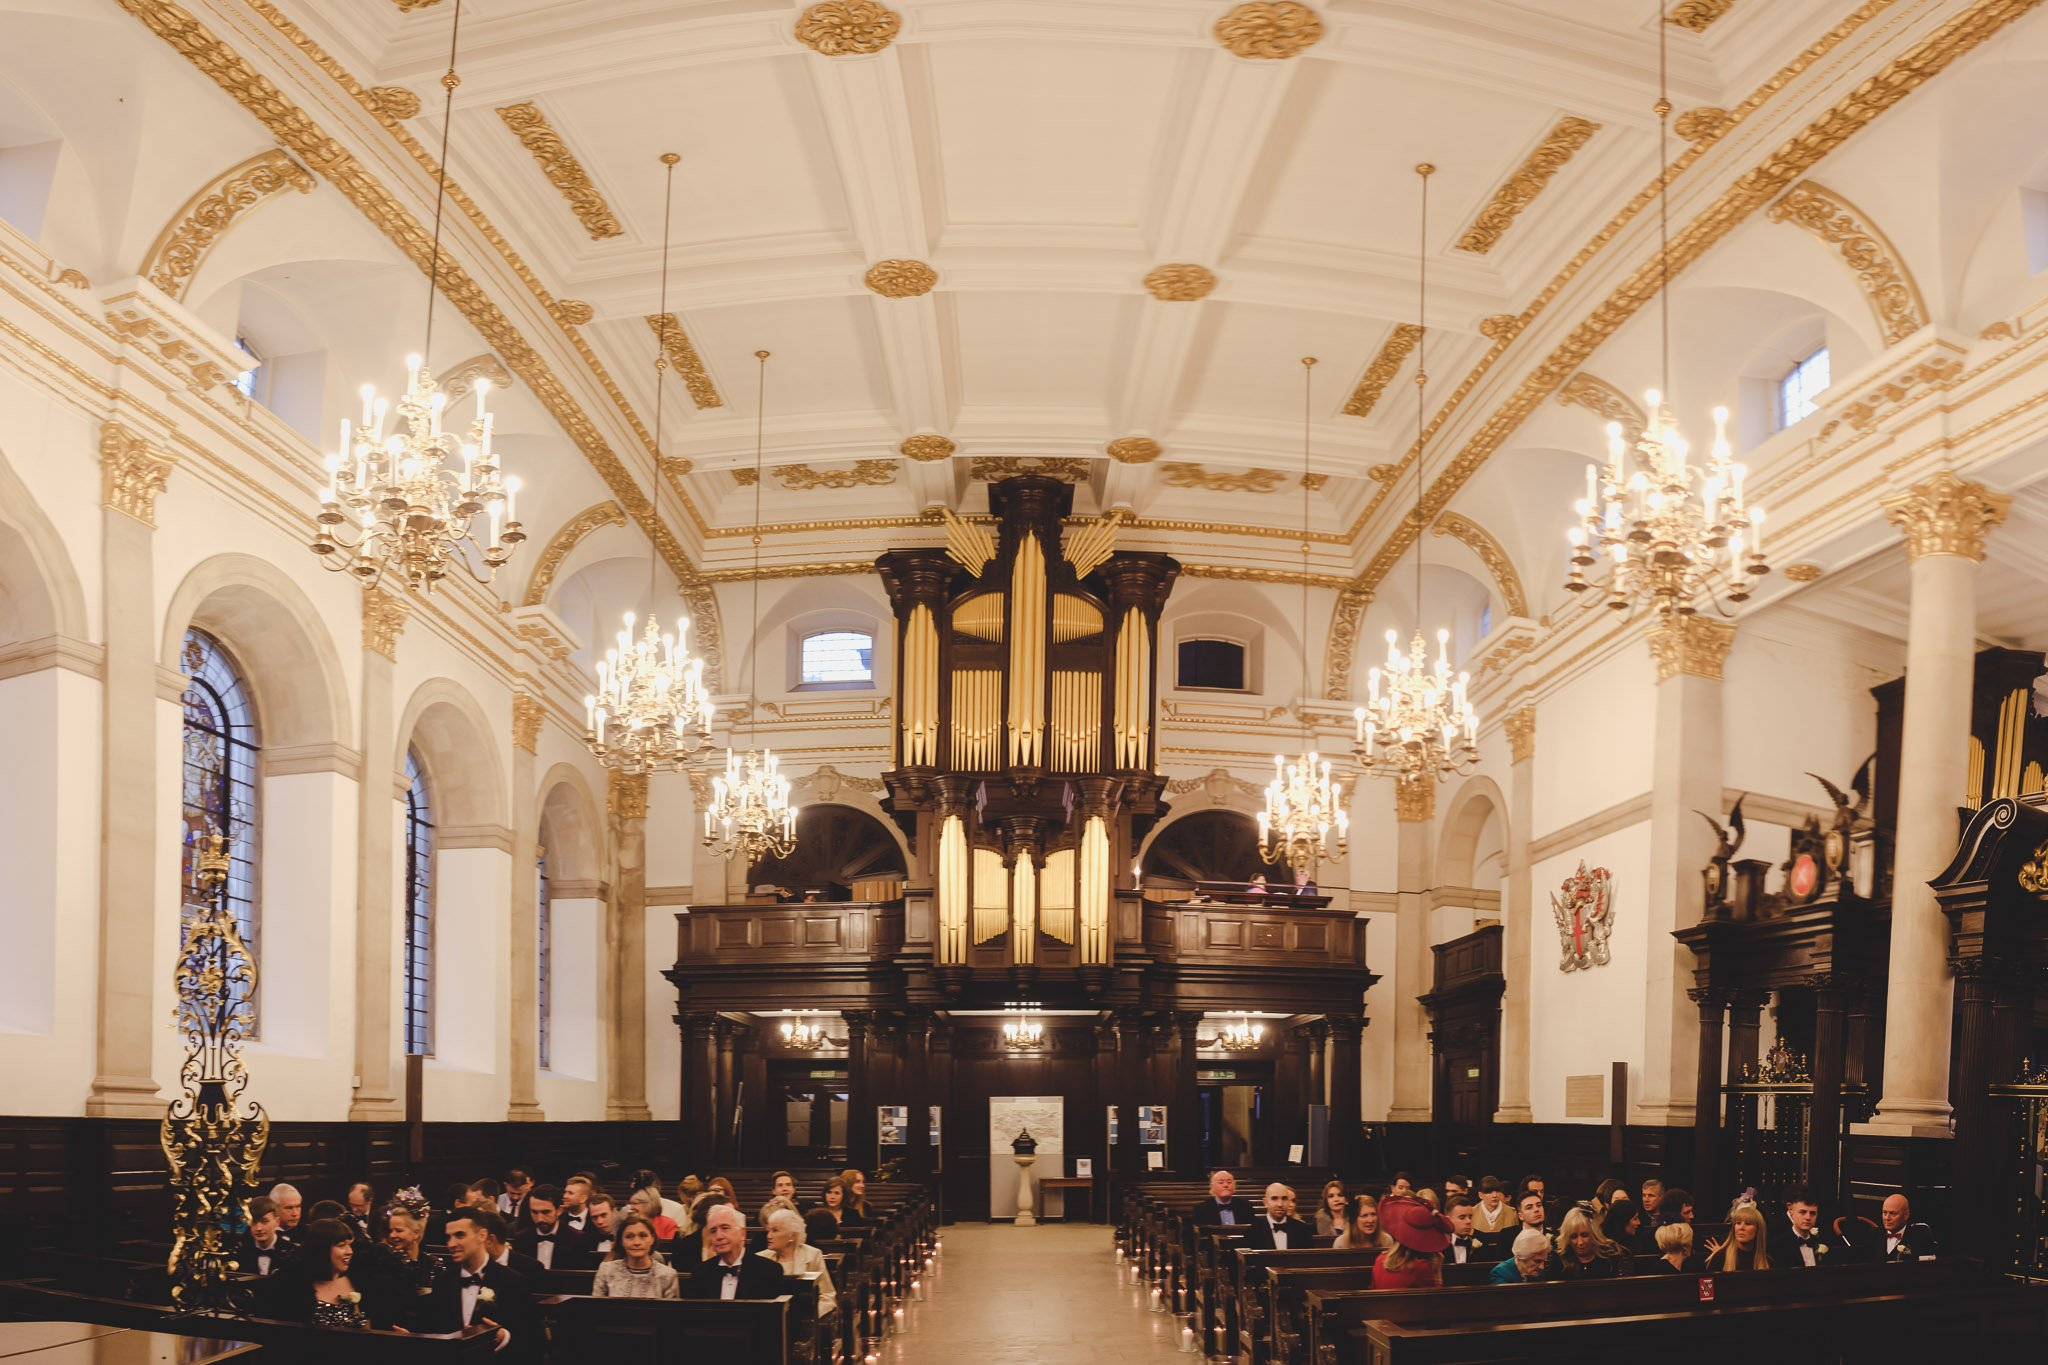 Wedding guests at St Lawrence Jewry Guildhall